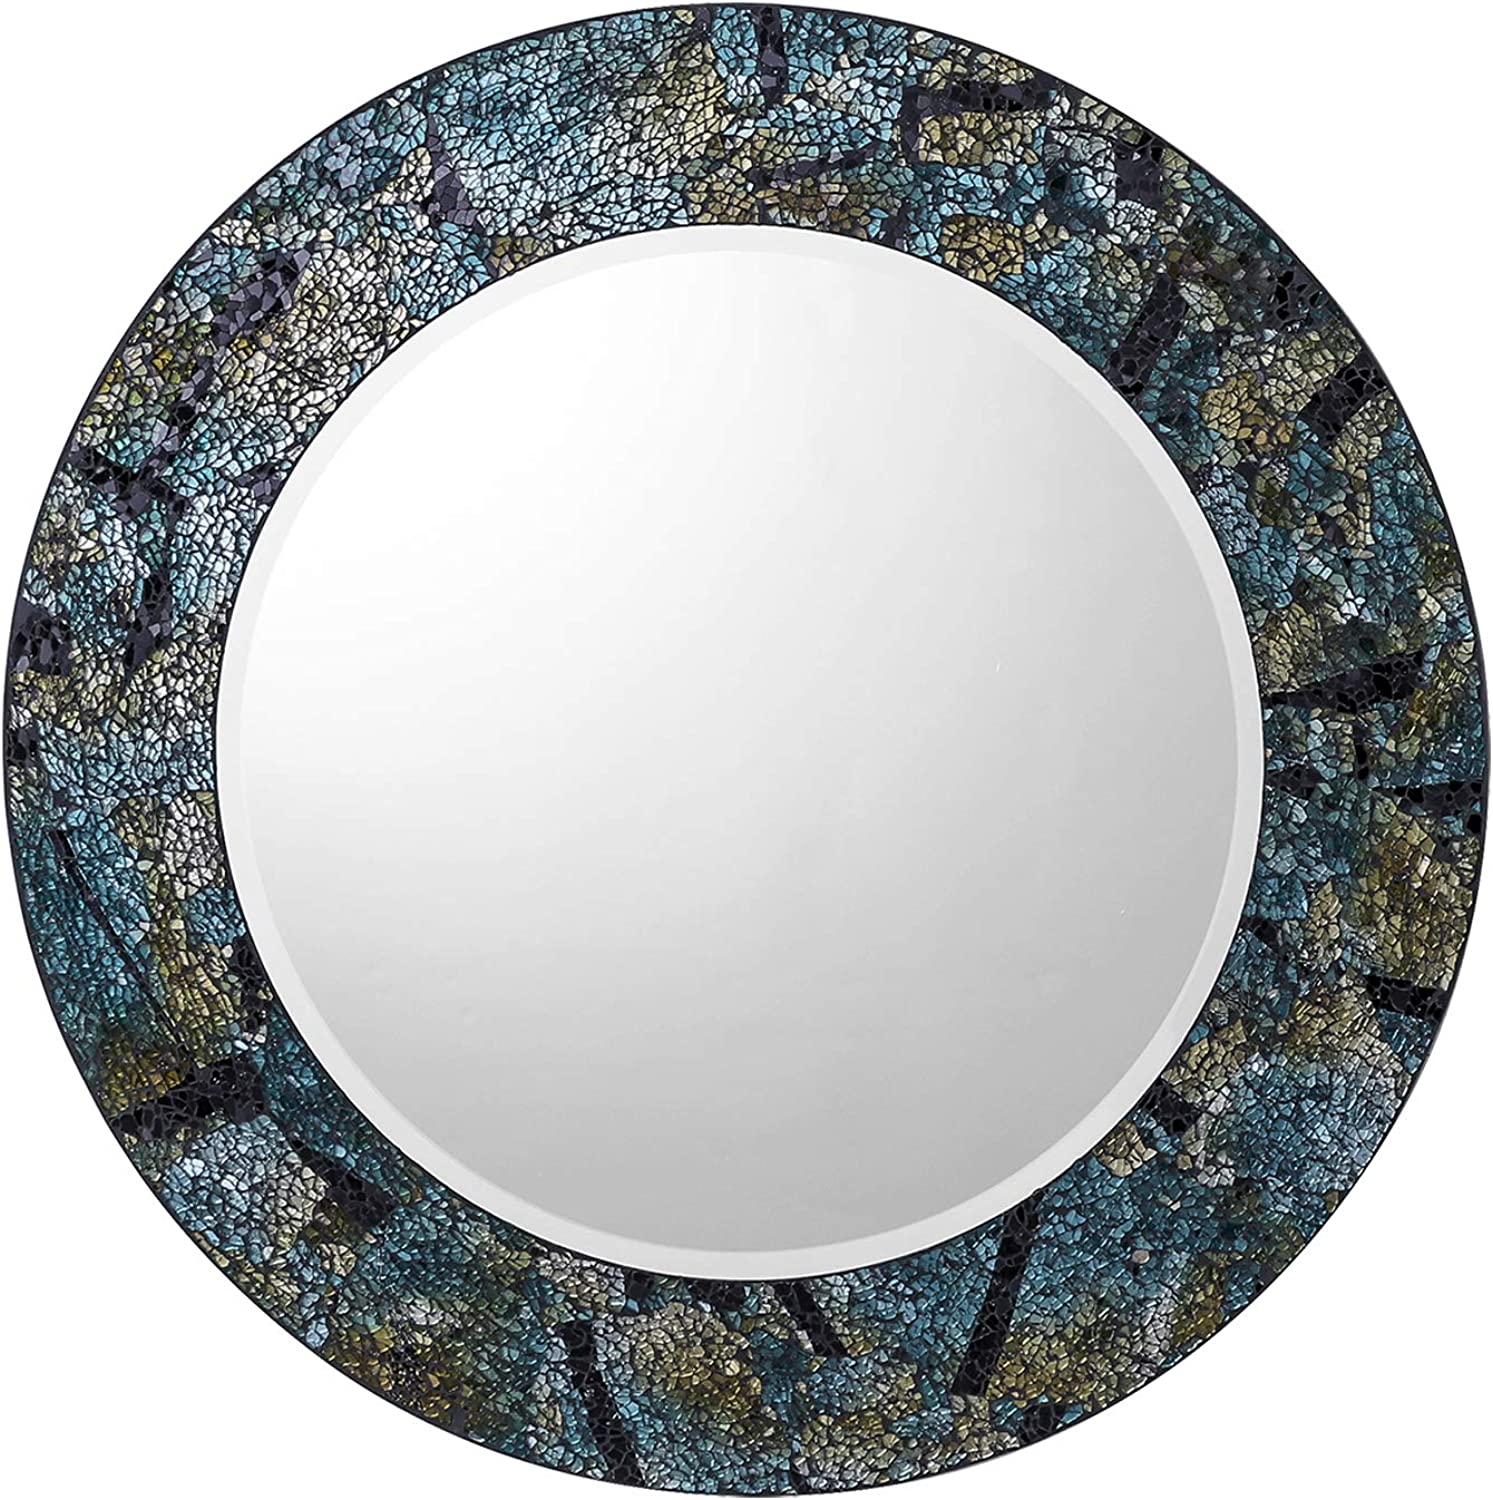 "Gala Houseware Decorative Glass Mosaic Wall Mirror, 20"" Round Wall Mirror Elegant Home Décor for Living Room, Bathroom, Hallway or Bedroom. (bluee-Multi)"